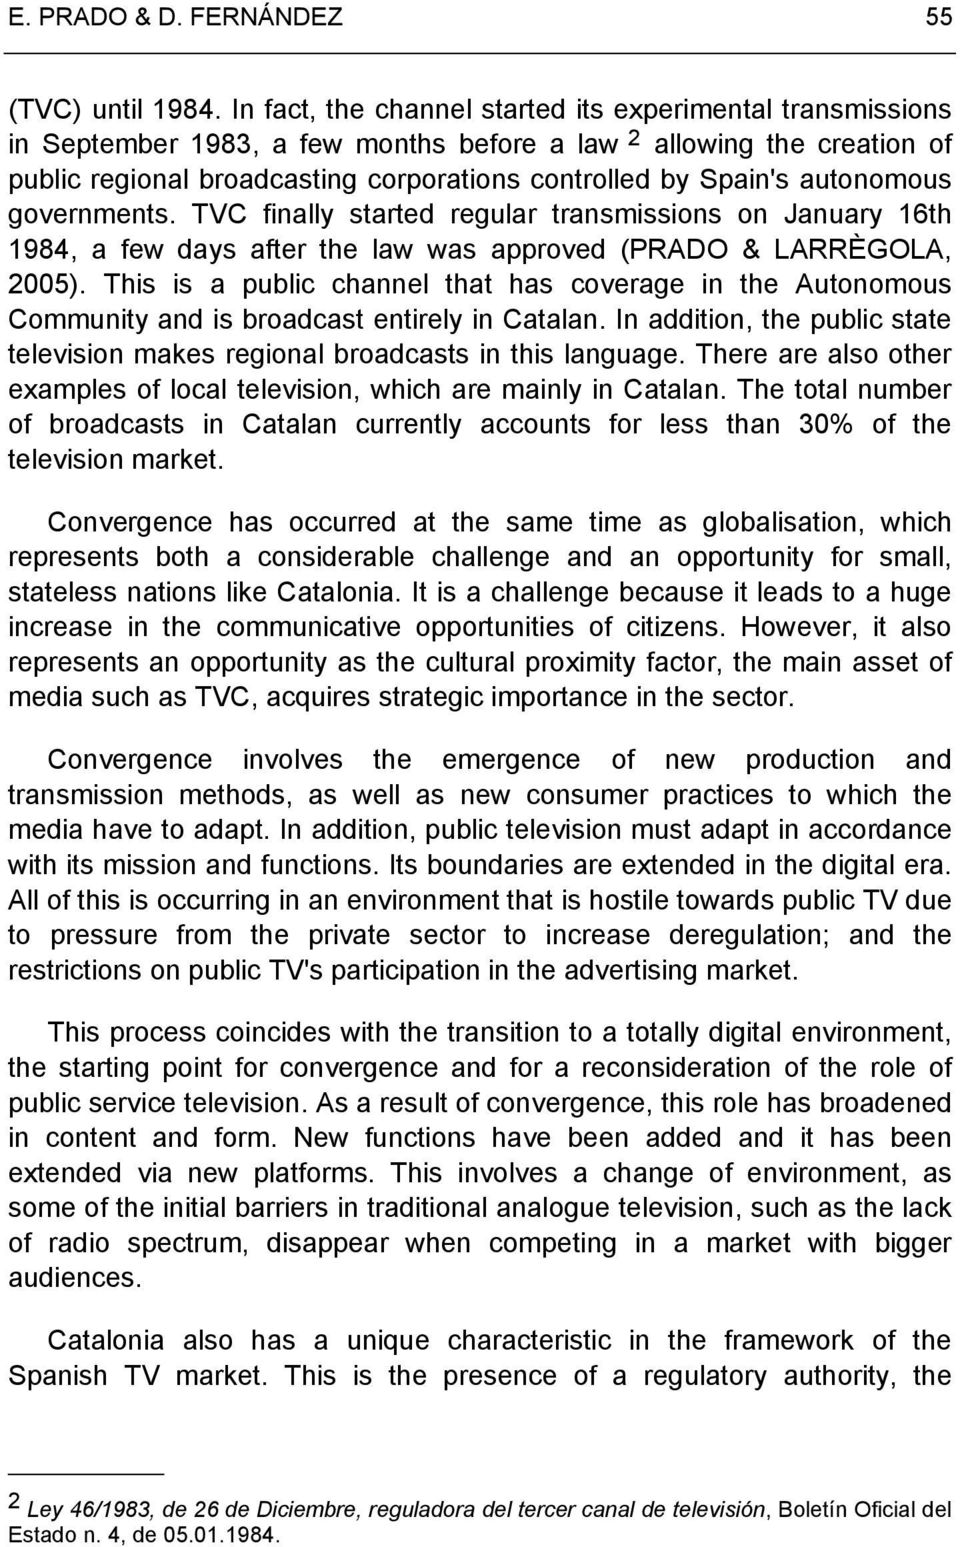 autonomous governments. TVC finally started regular transmissions on January 16th 1984, a few days after the law was approved (PRADO & LARRÈGOLA, 2005).